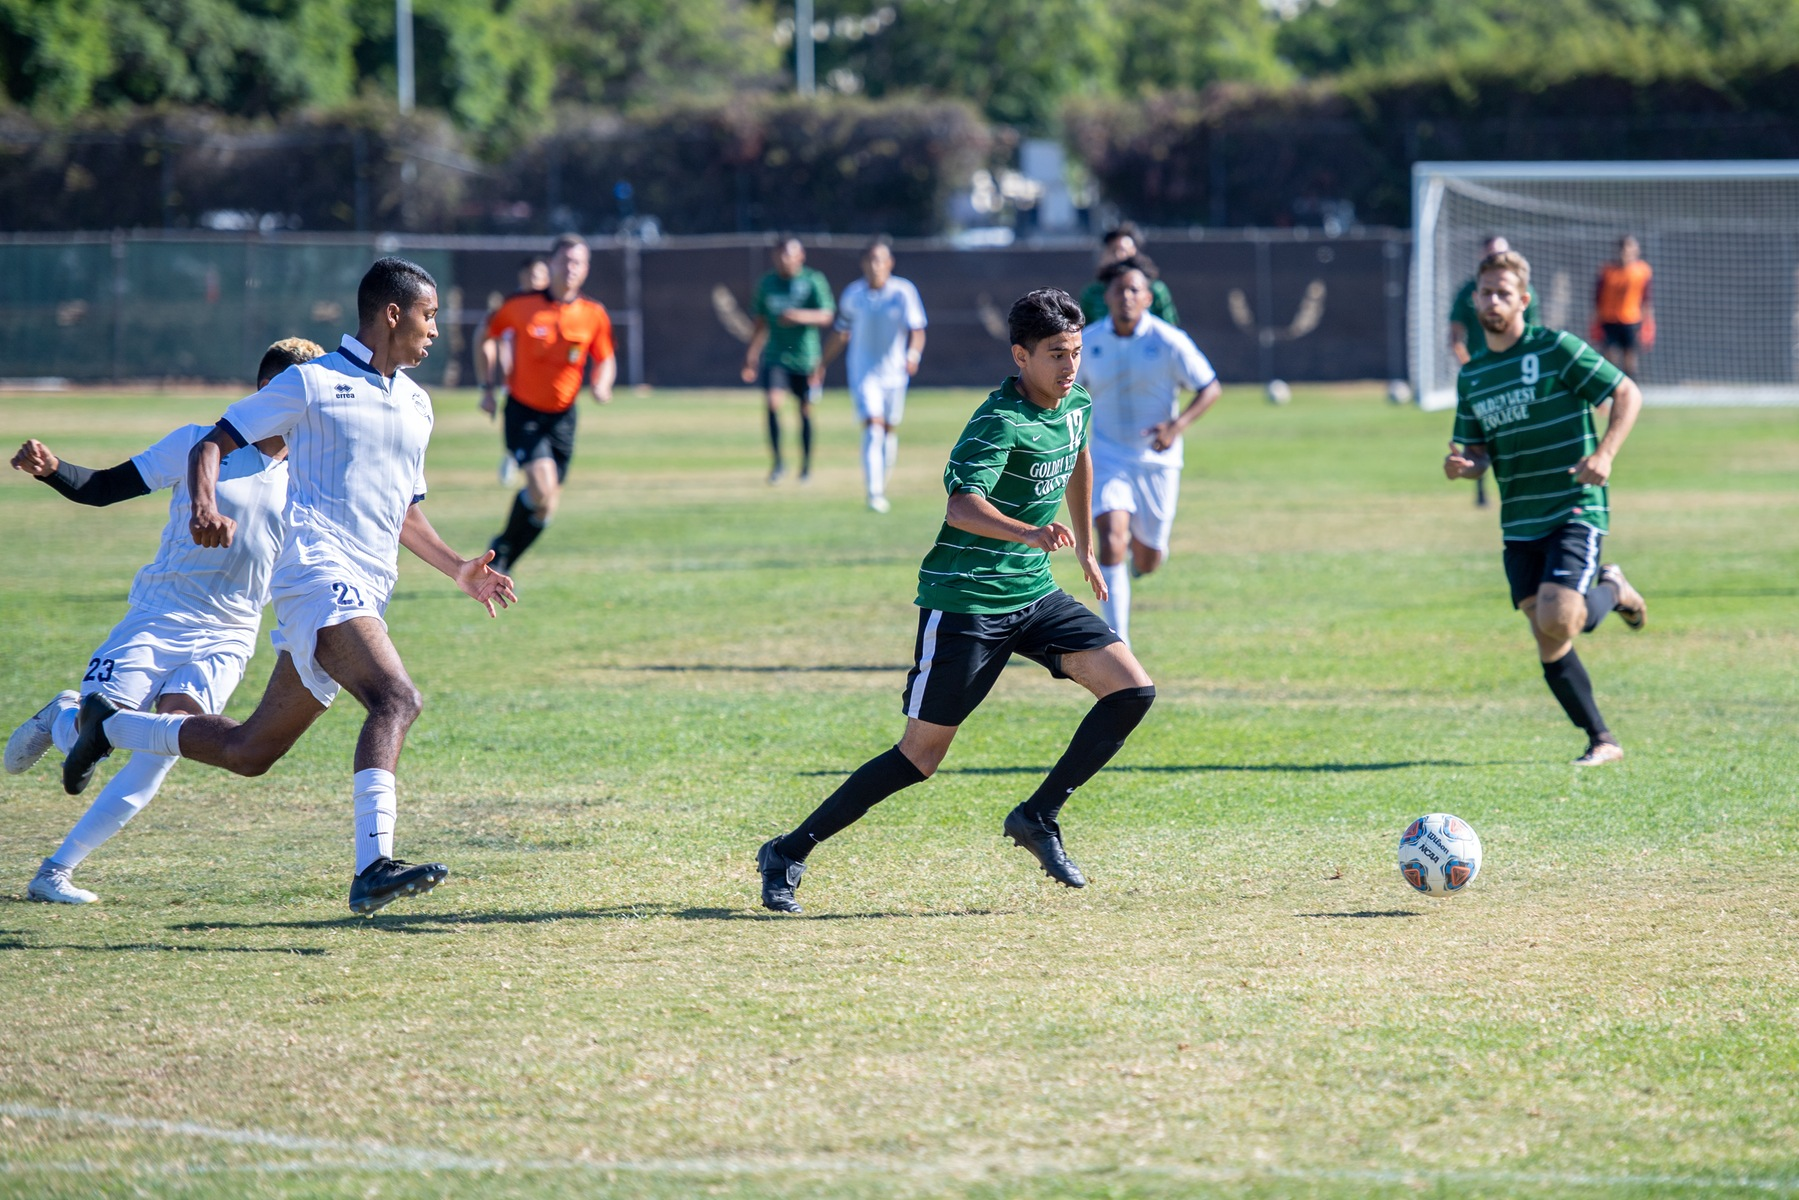 M Soccer: Earns the 6th Seed in CCCAA Soccer Playoffs